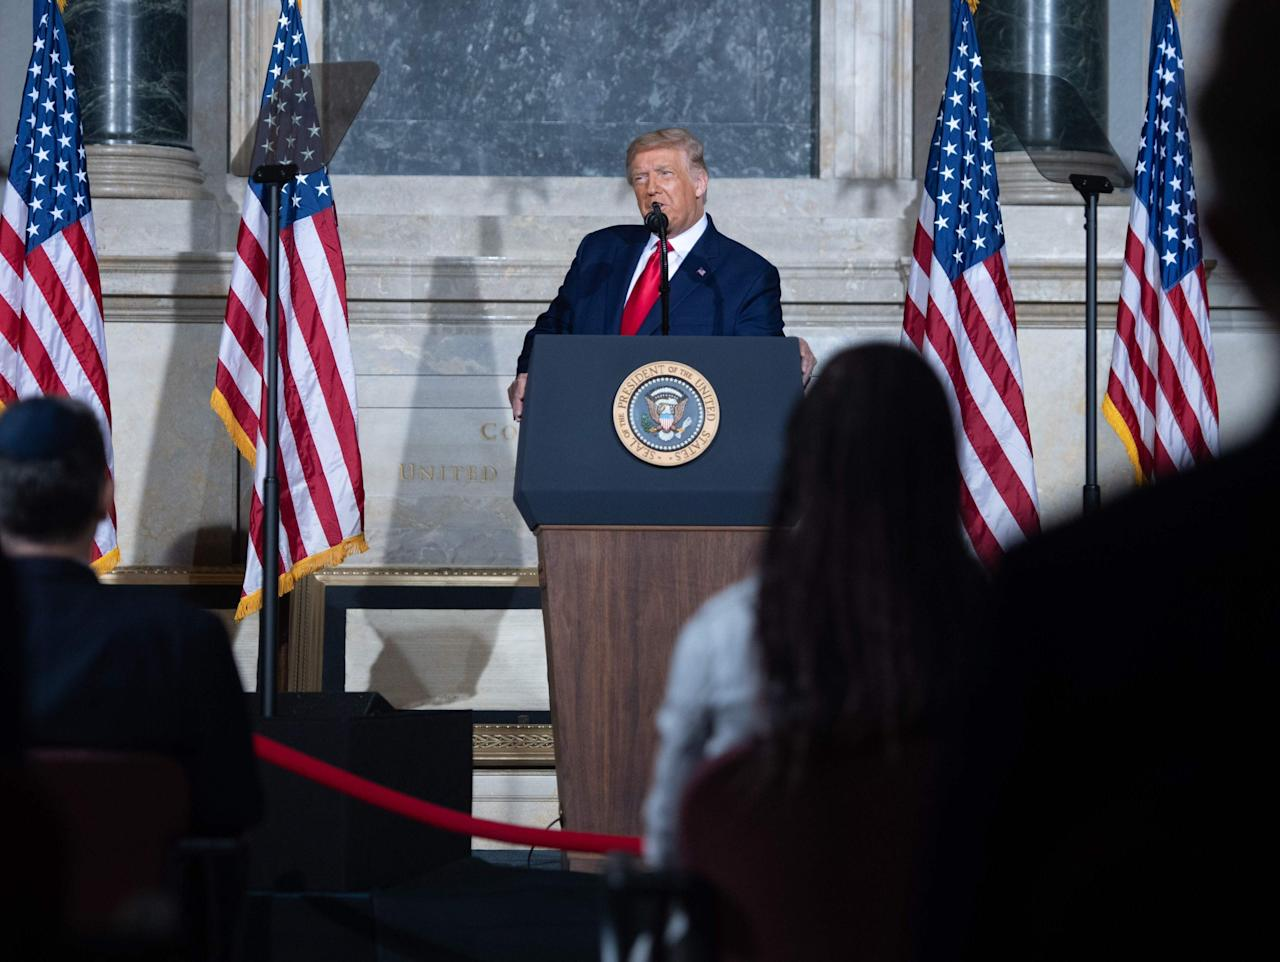 Trump warns of left-wing segregation and pushes patriotic education in bizarre speech at National Archives